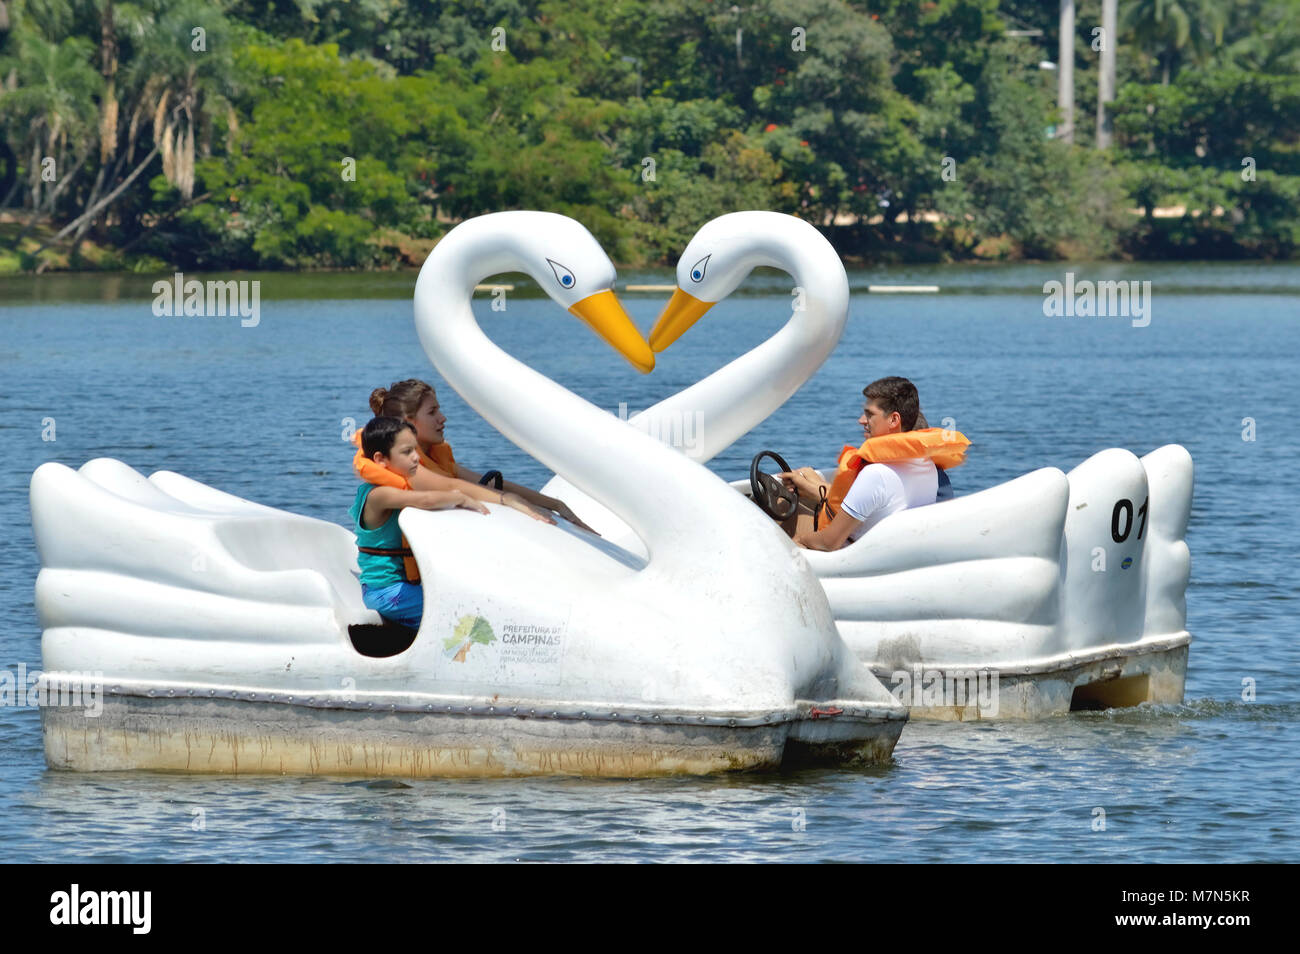 Campinas, SP/ Brazil - March 11, 2018: Family having fun riding on the swan shaped pedal boats at Portugal Park's - Stock Image